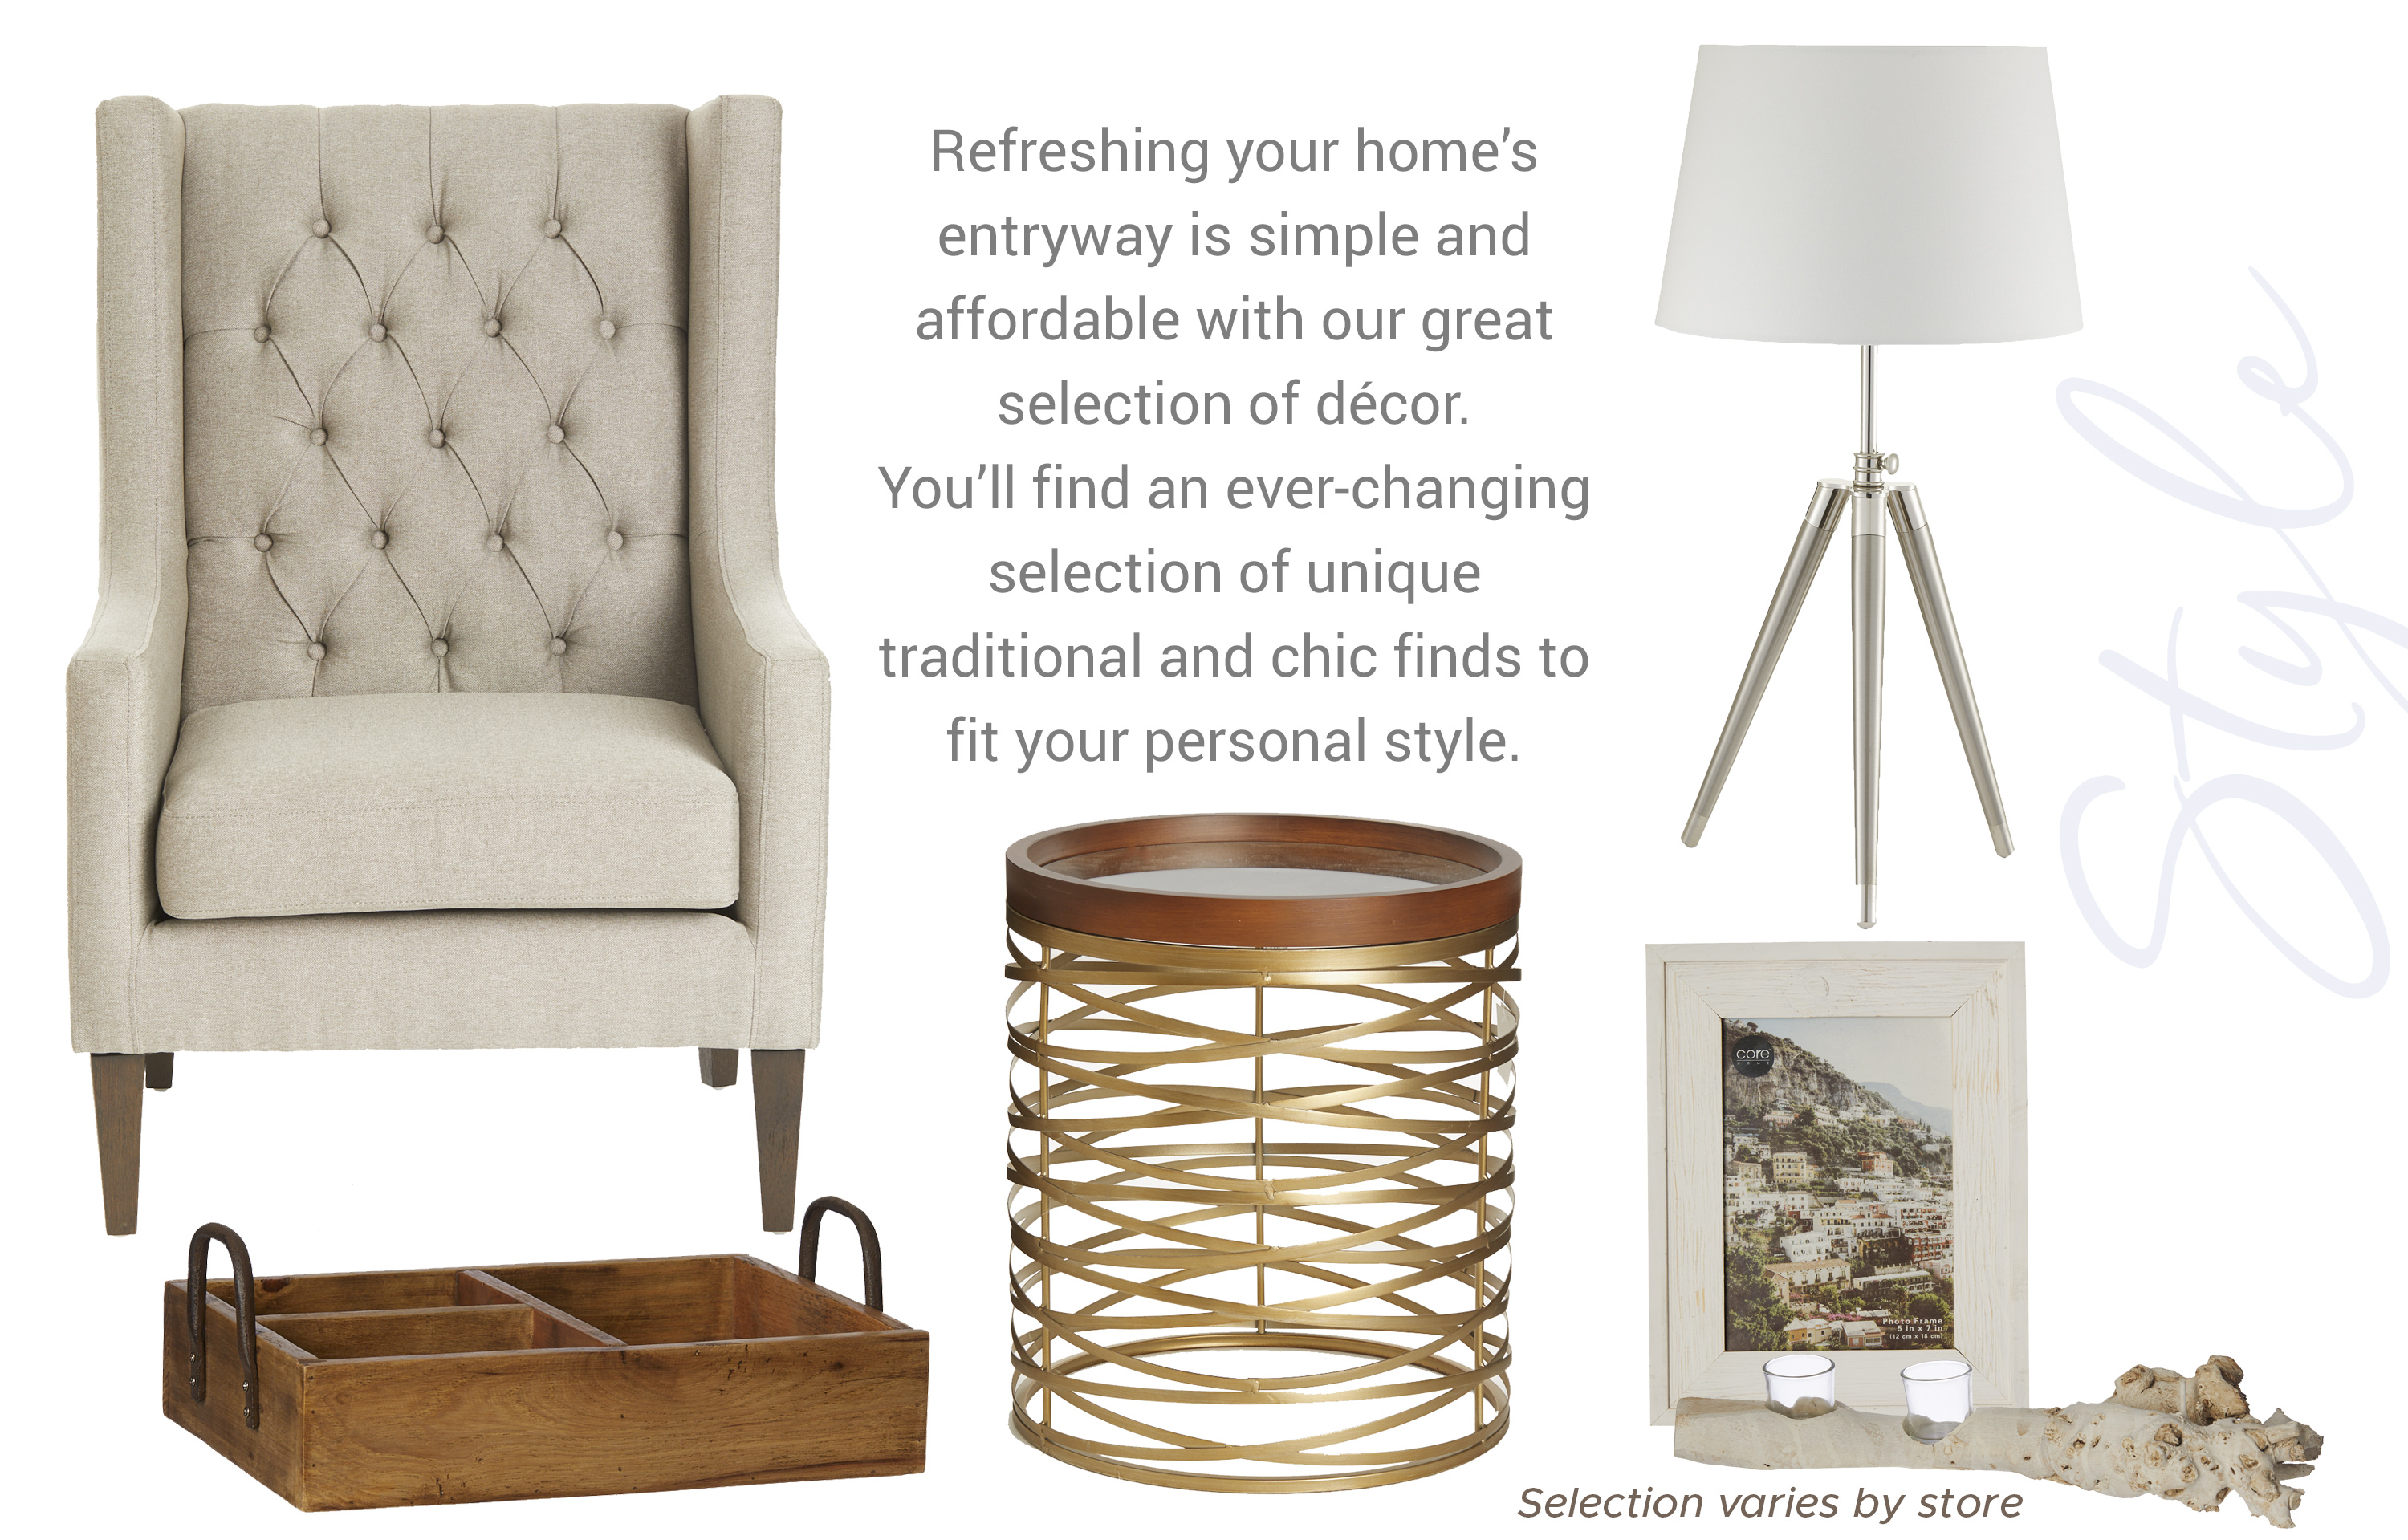 Refreshing your home's entryway is simple and affordable with our great selection of décor. You'll find an ever-changing selection of unique traditional and chic finds to fit your personal style.